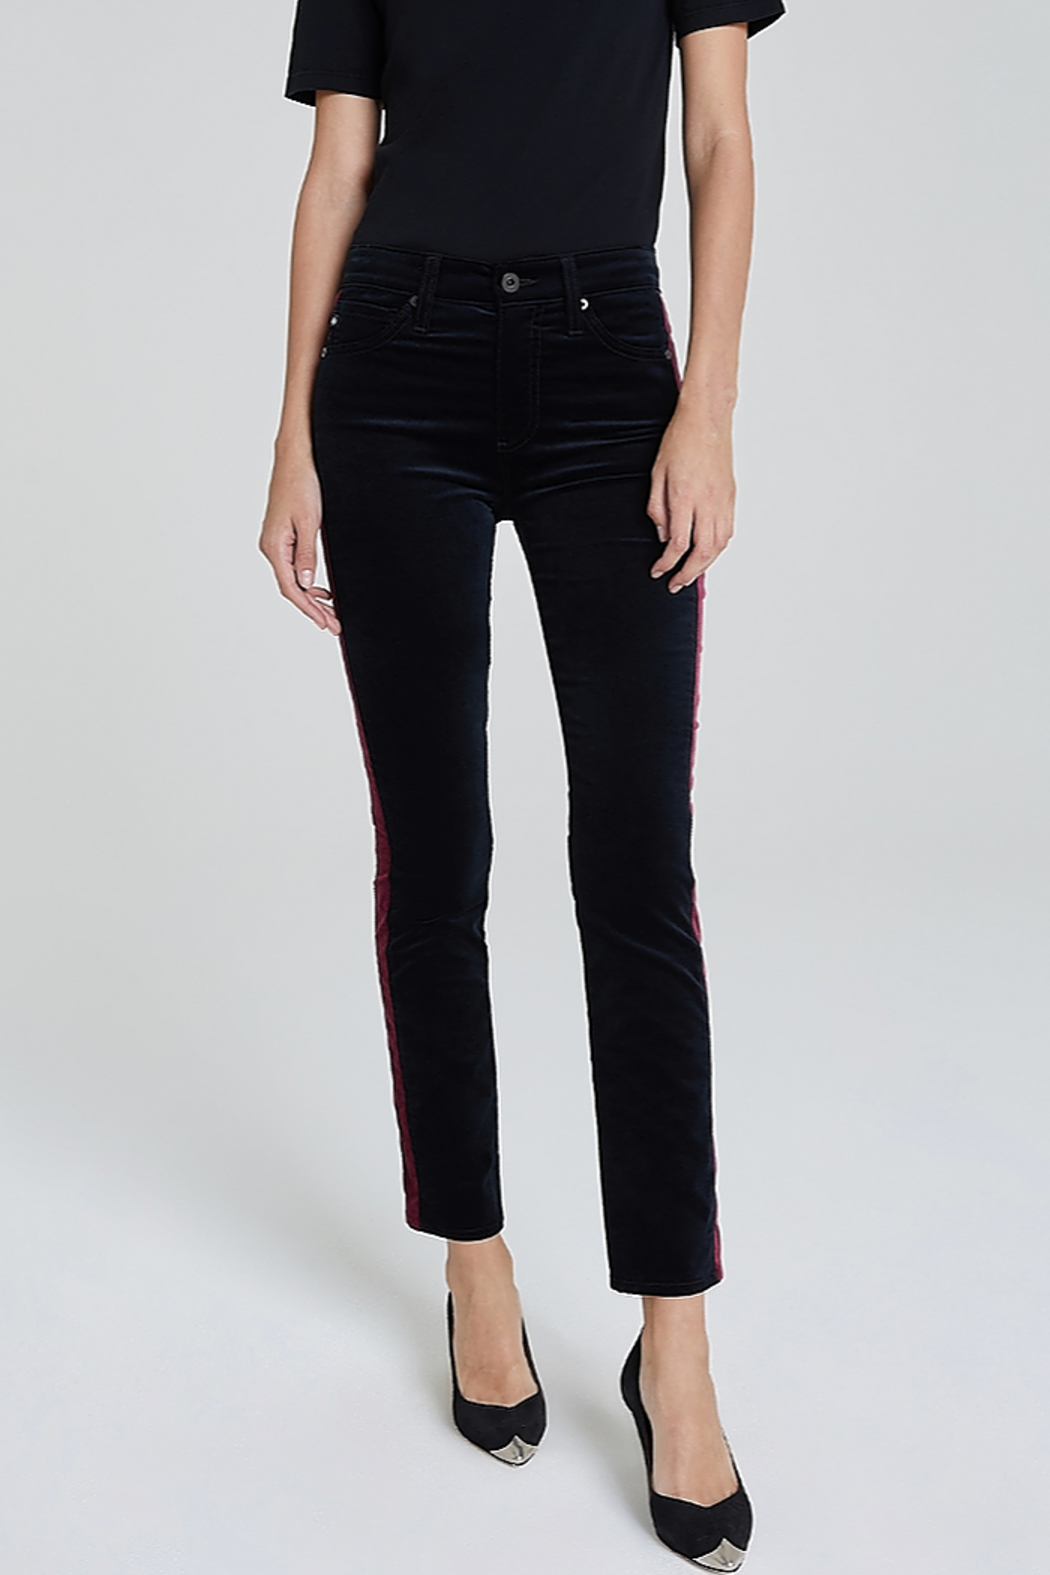 Adriano Goldschmied Mari Tuxedo Stripe Pants - Front Full Image